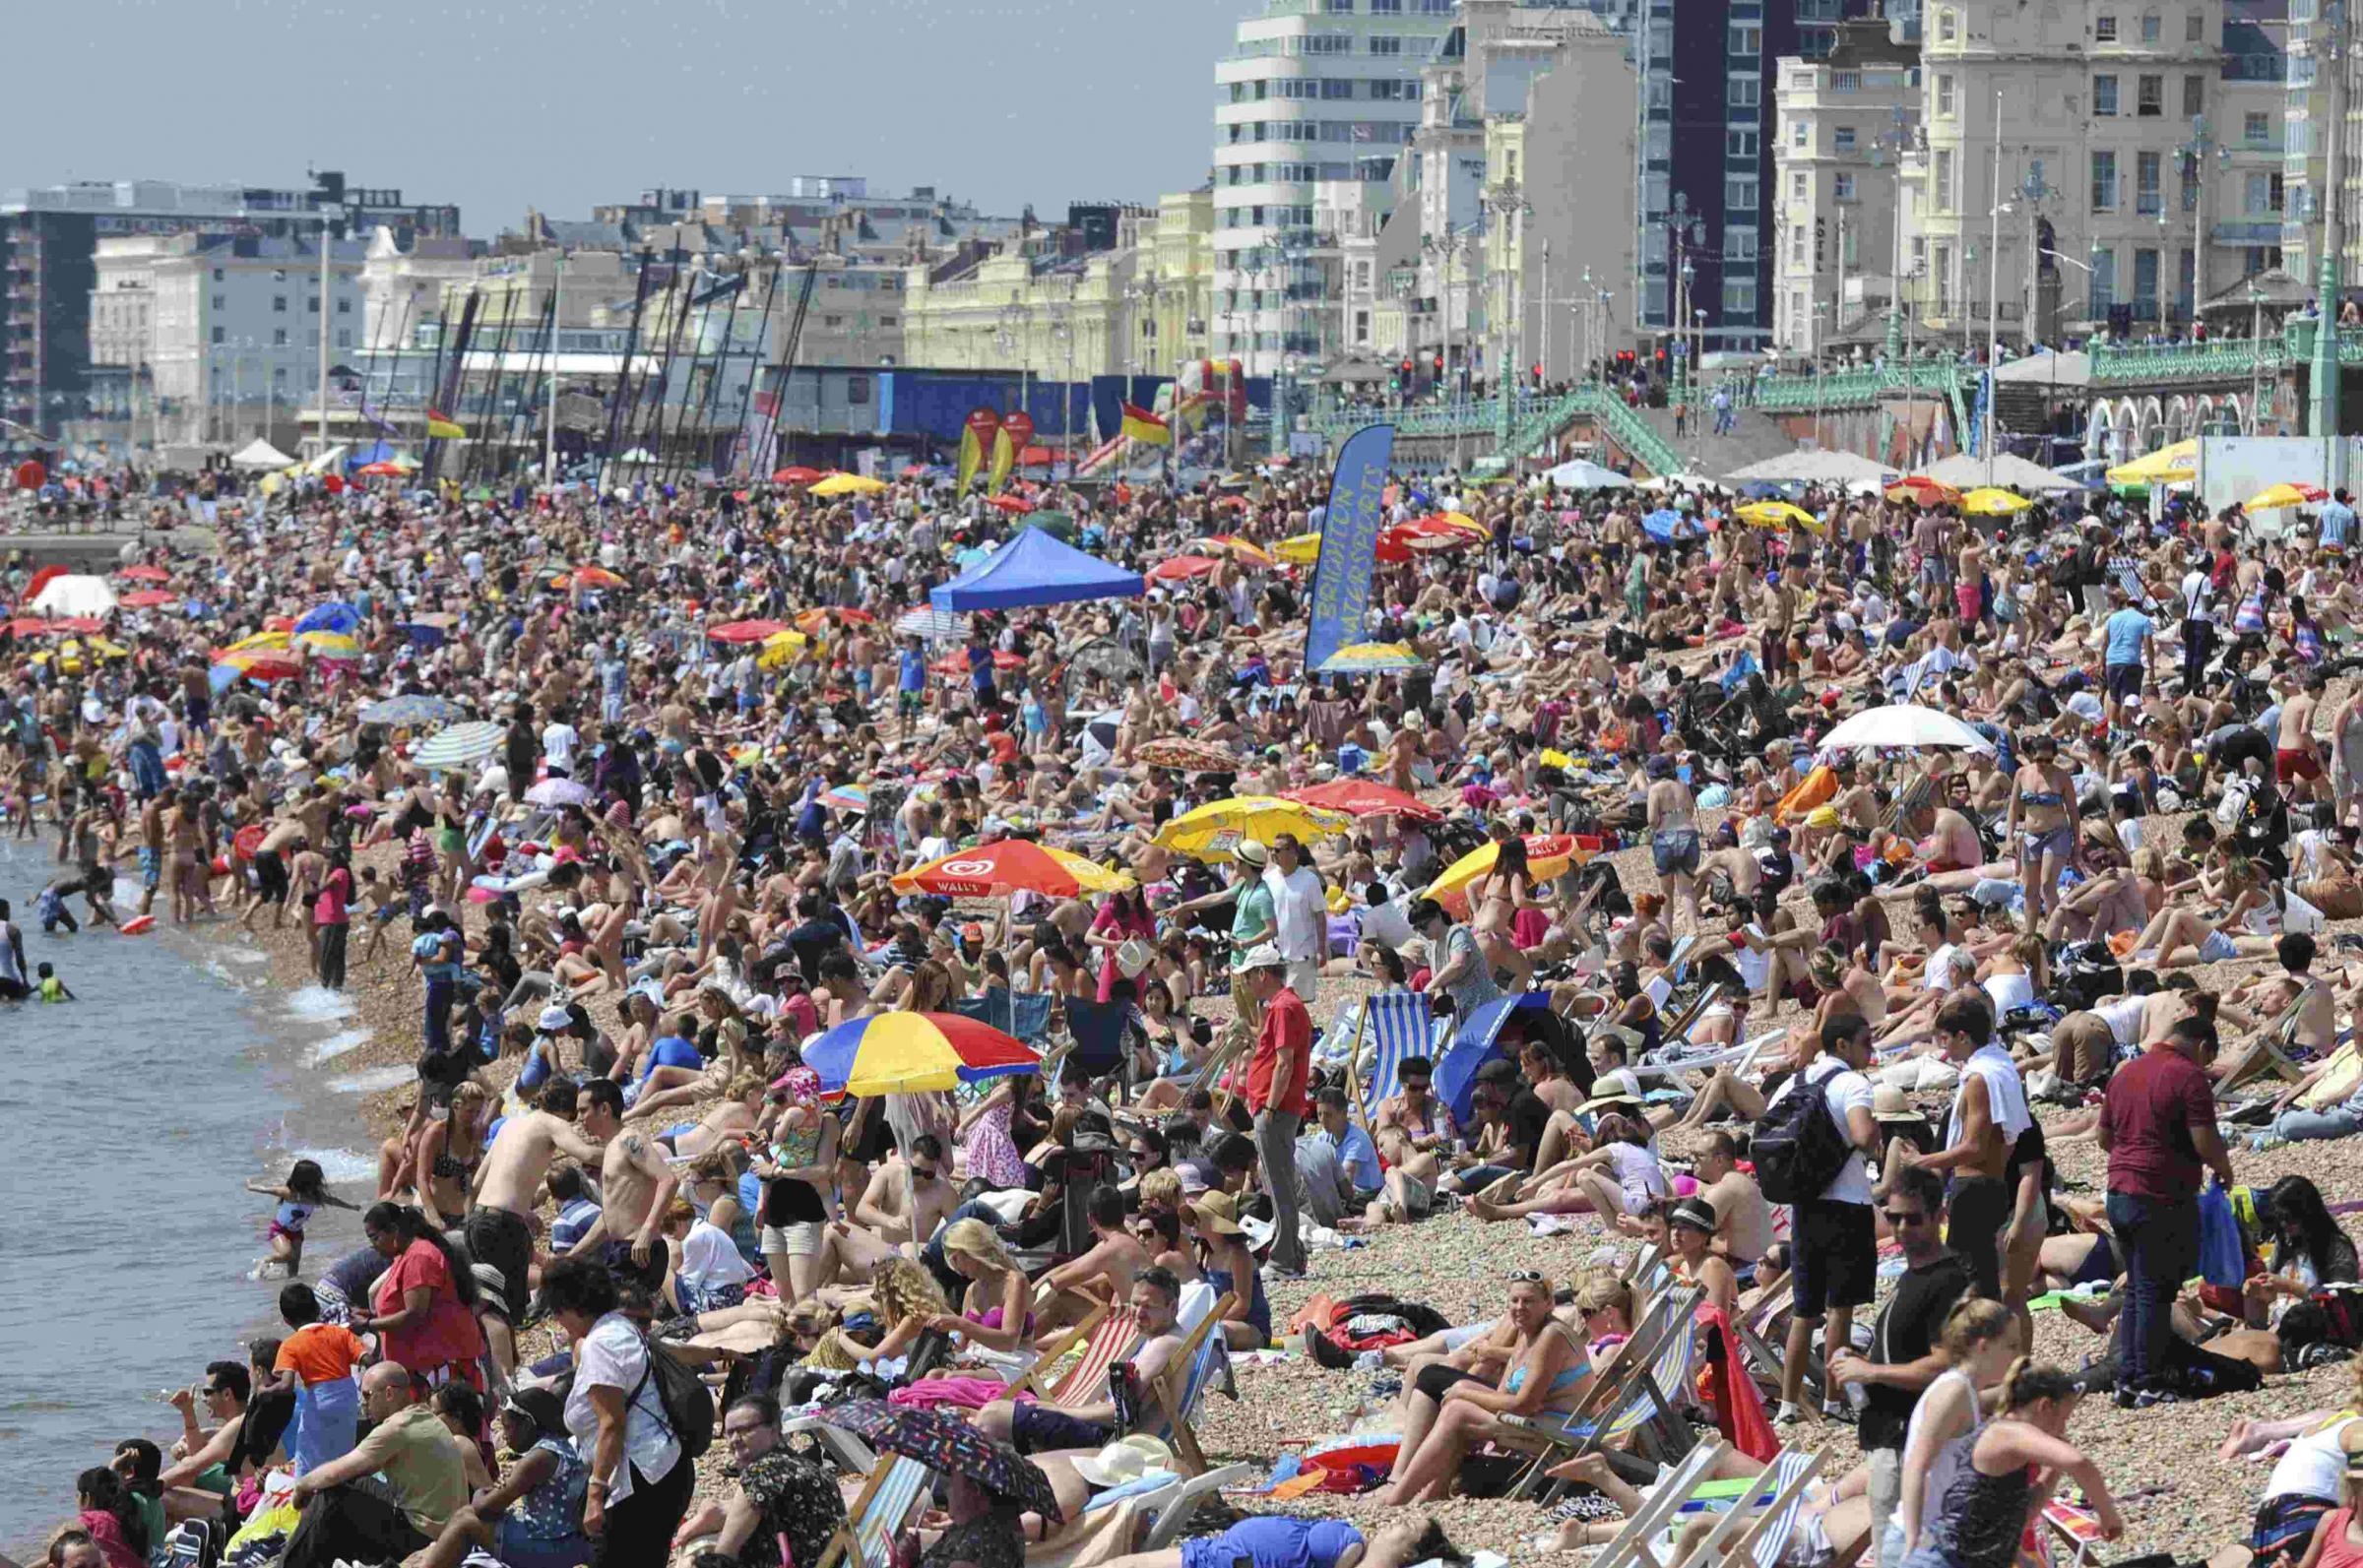 August Bank Holiday seaside trips unattainable for one in five families